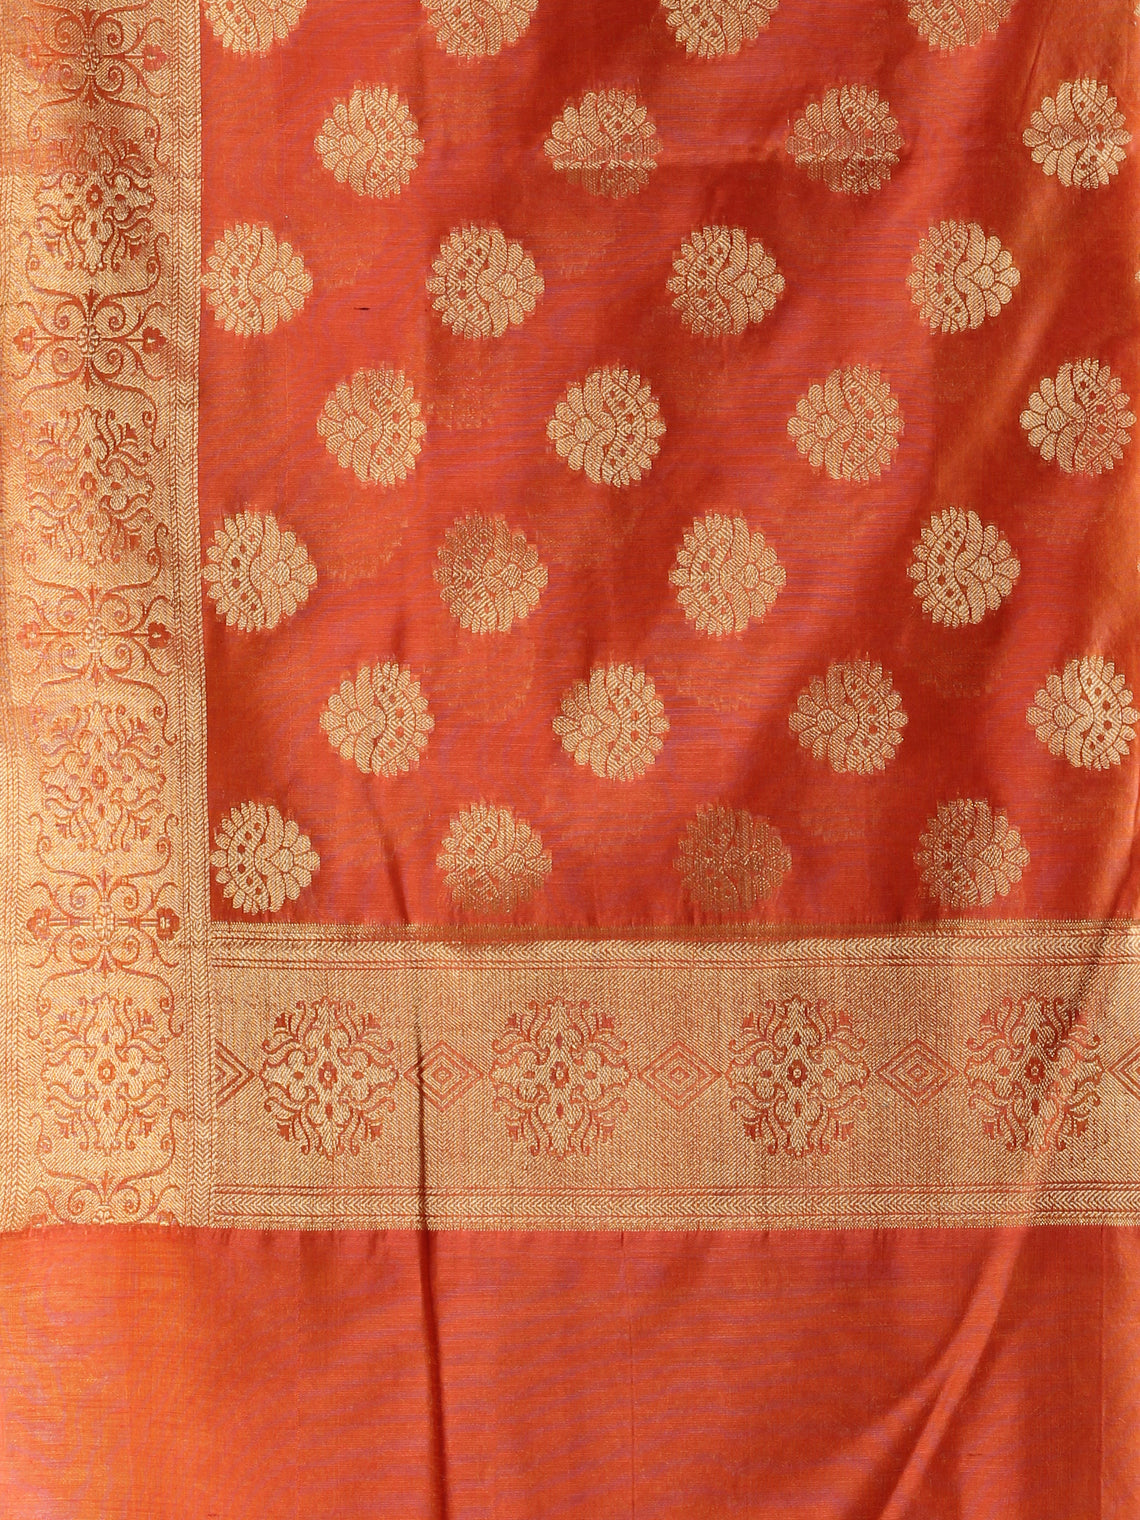 Banarasi Chanderi Dupatta With Resham Work - Orange & Gold - D04170815